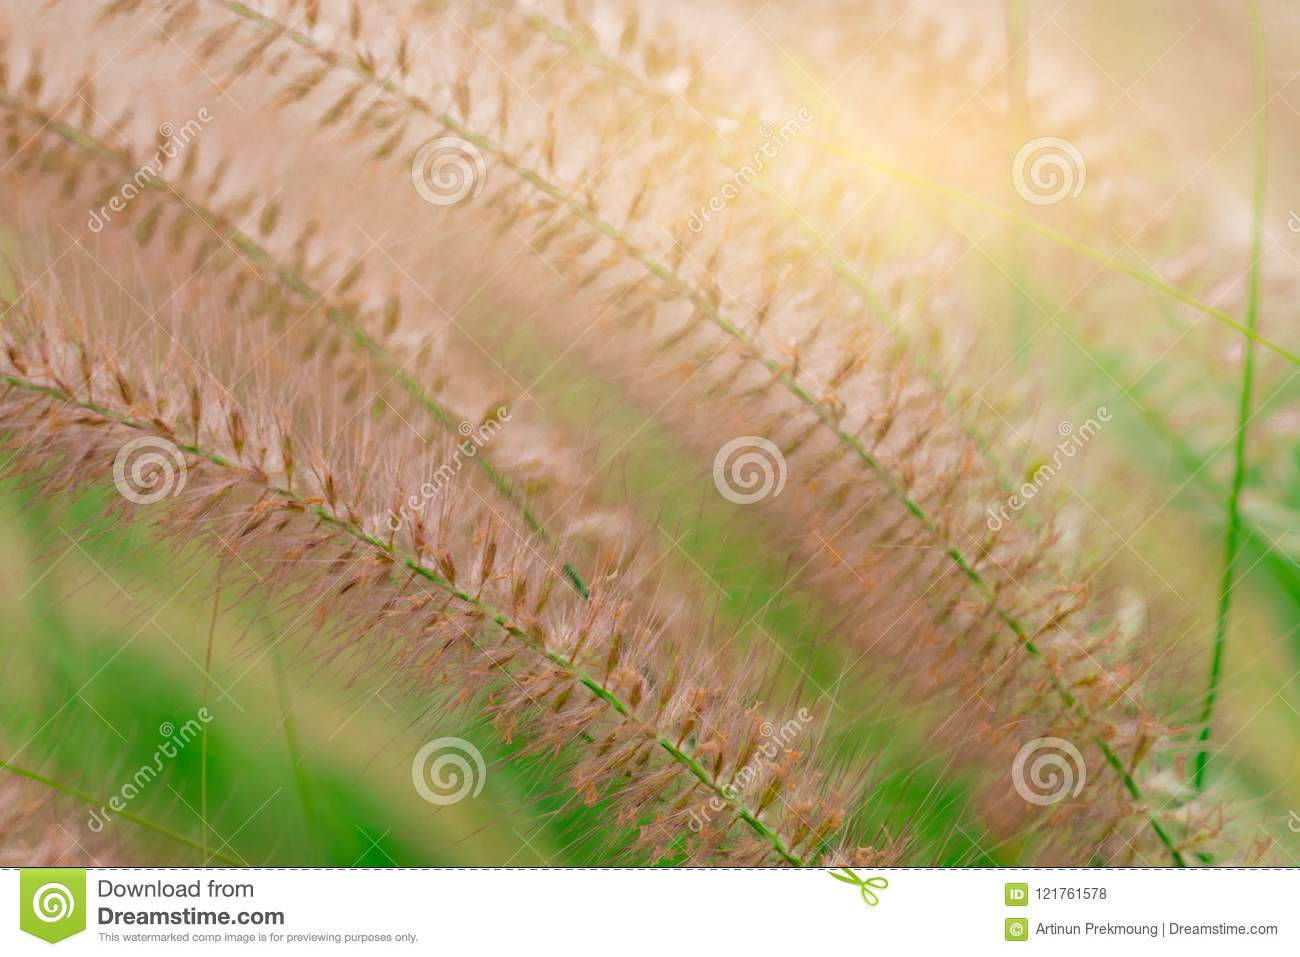 Macro shot detail of beautiful grass flower on blurred green leaves. Background for love peaceful and happy life concept.